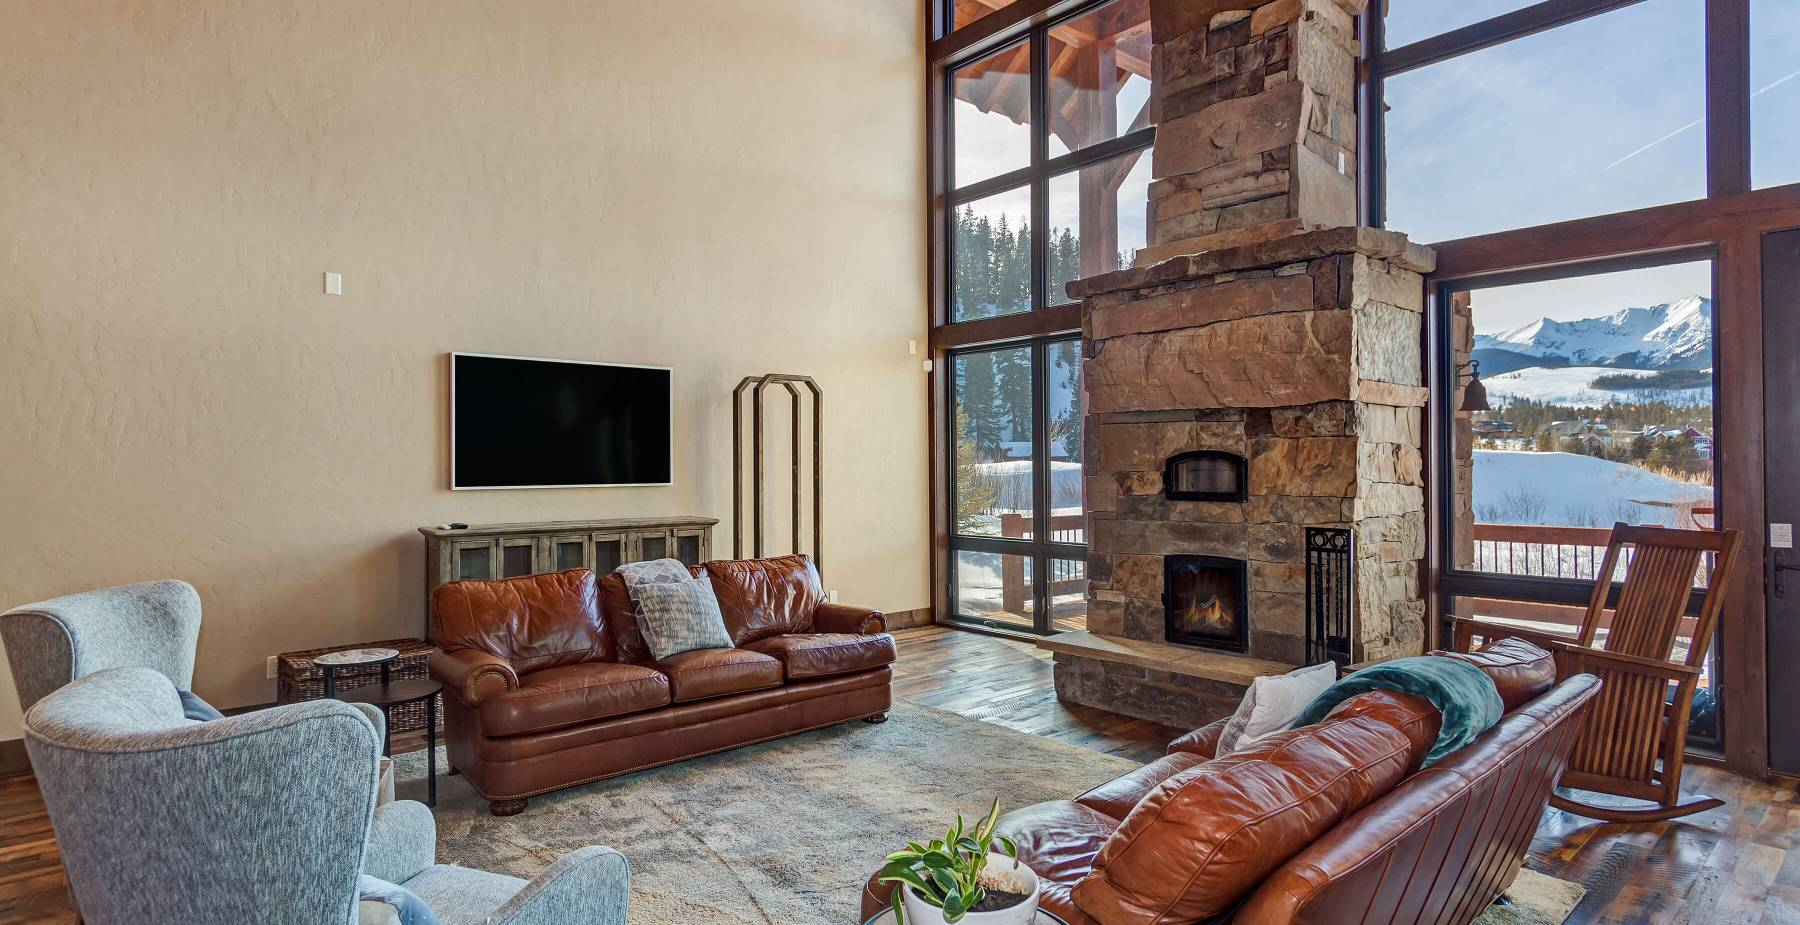 Observatory Private Home in the Highlands Breckenridge